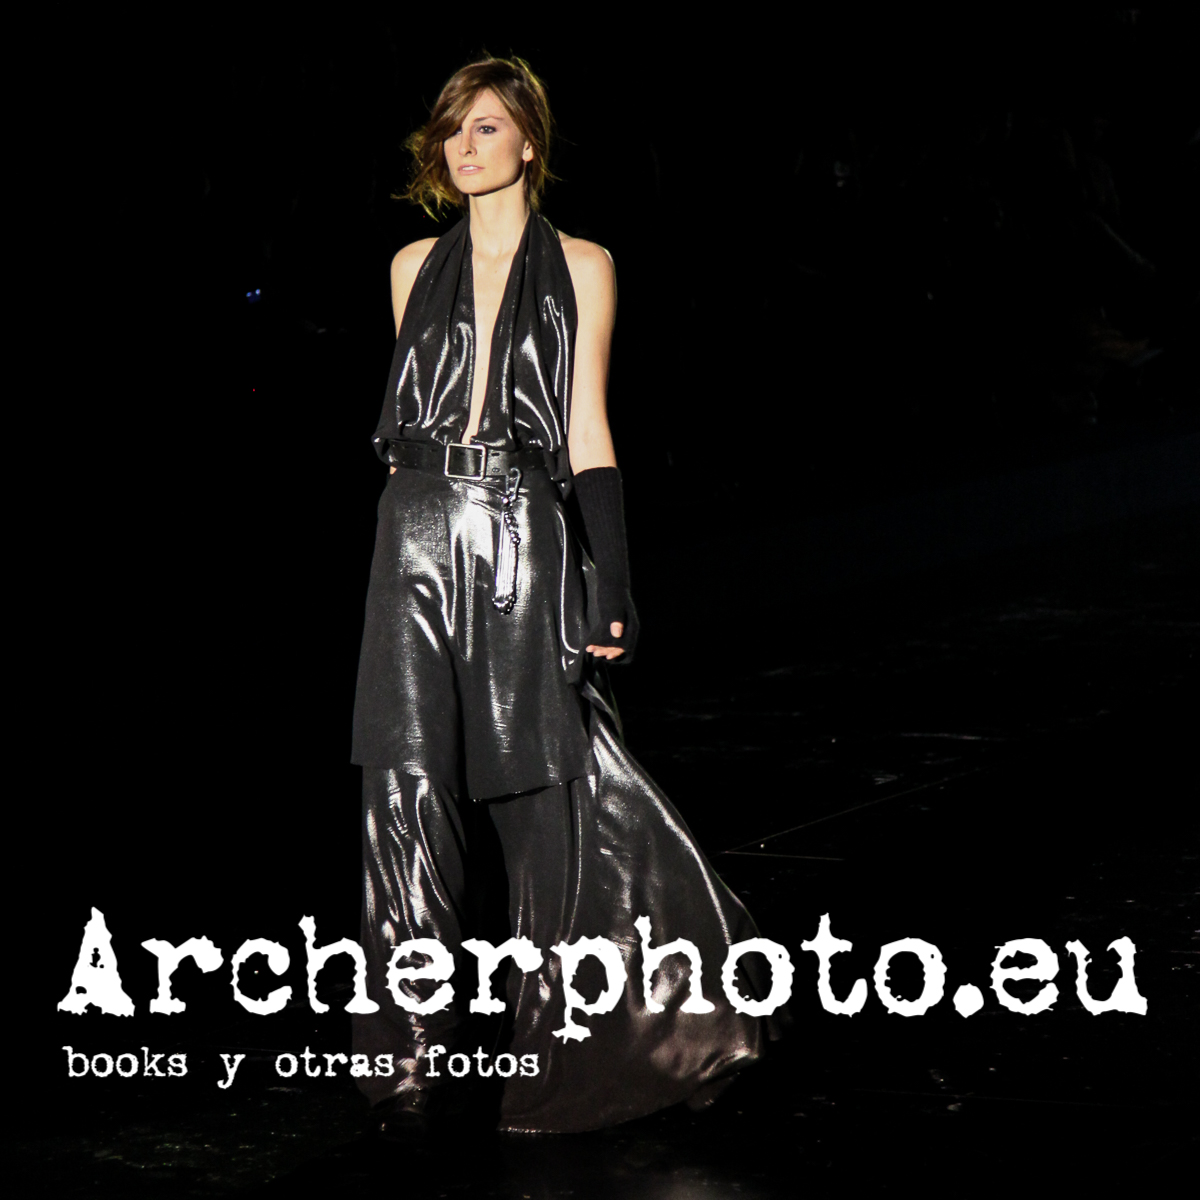 Hoet! runway, Valencia Fashion Week, February 3rd 2009 by Archerphoto, photographer in Spain